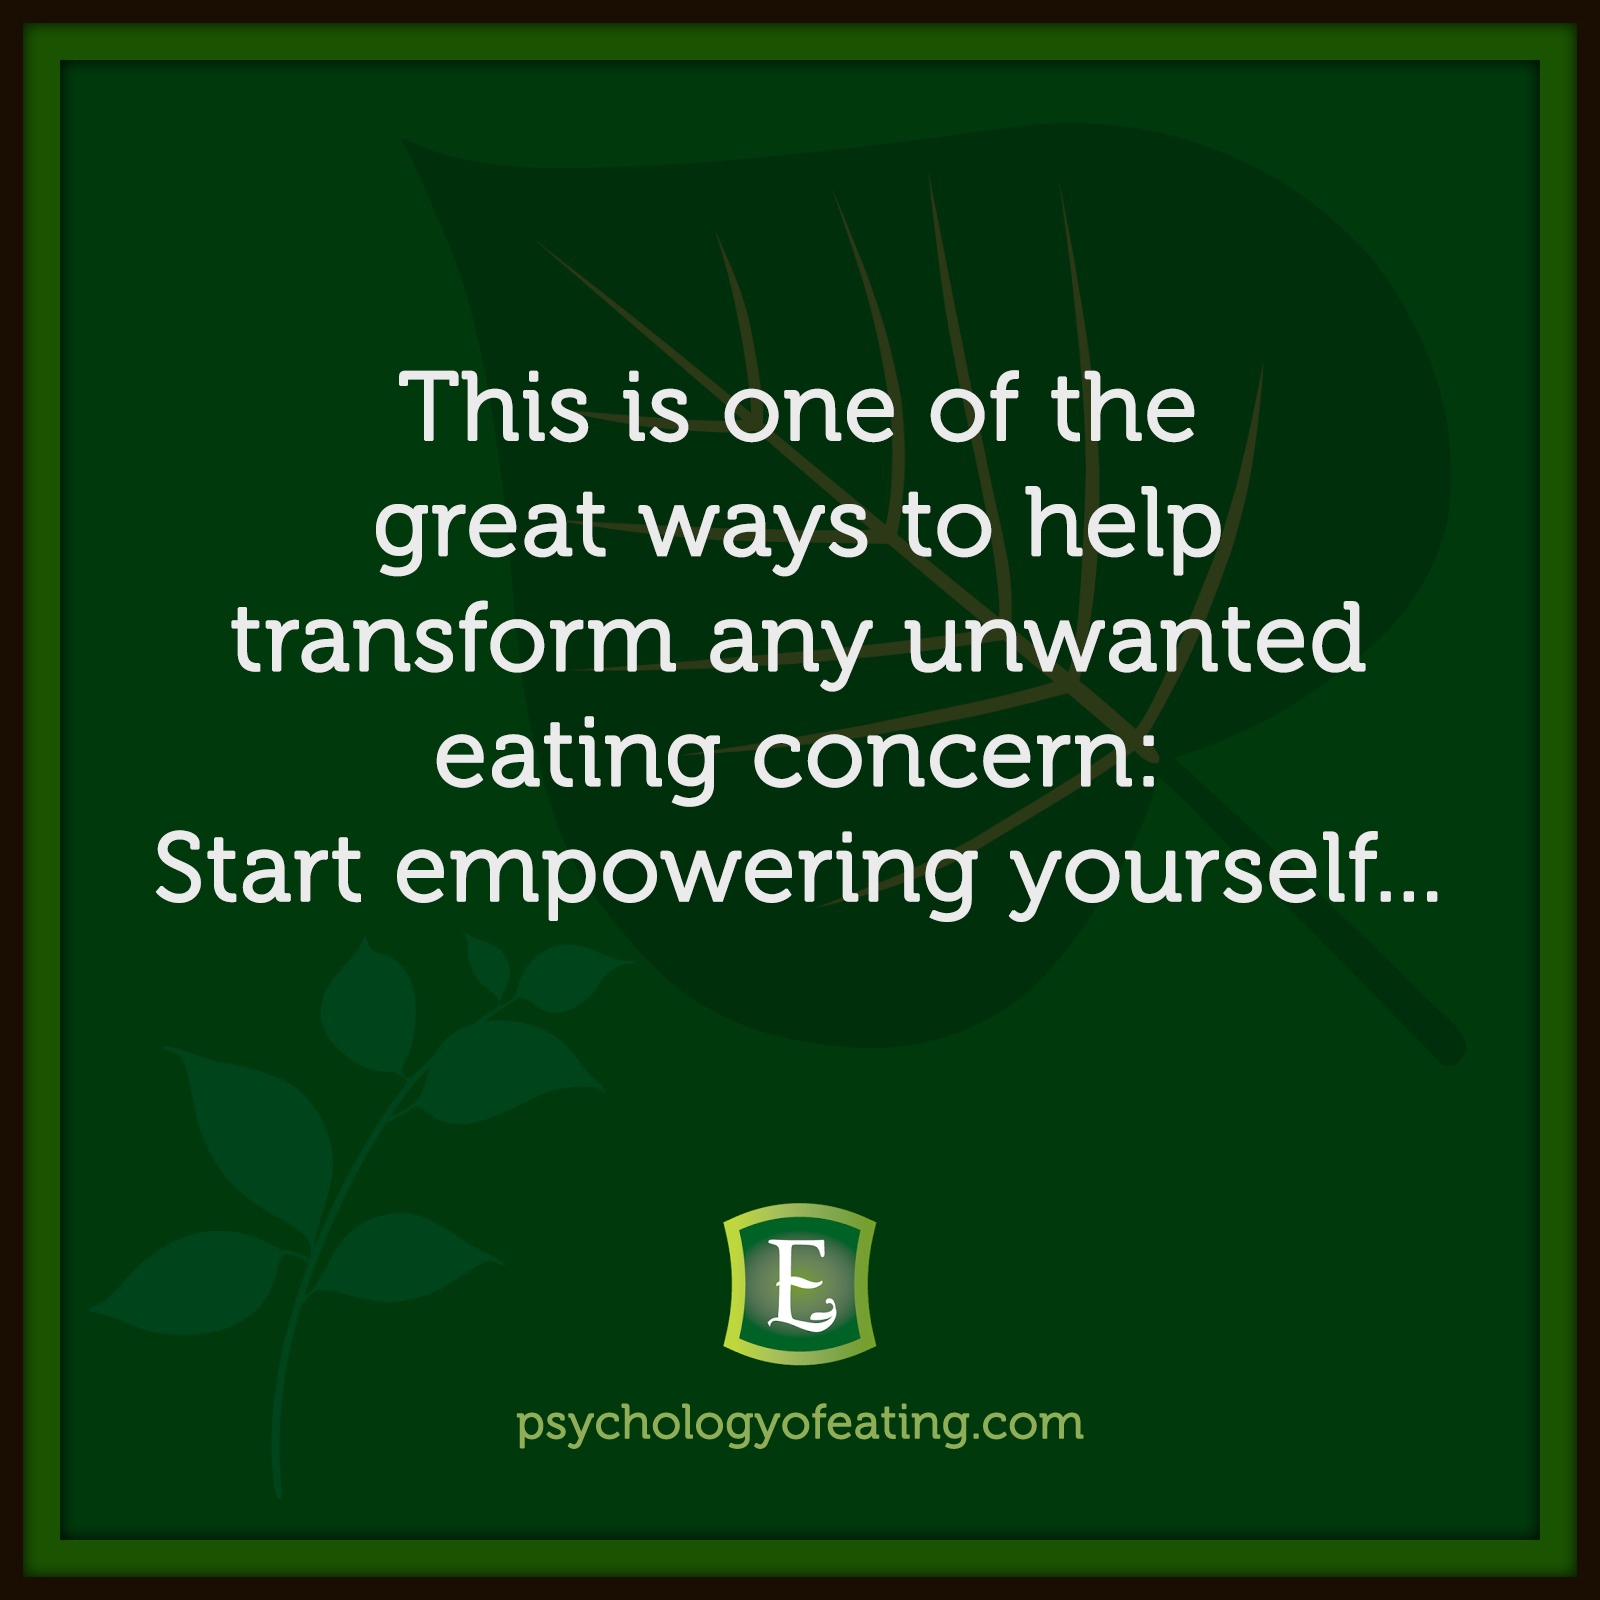 This is one of the great ways to help transform any unwanted eating concern: Start empowering yourself… #health #nutrition #eatingpsychology #IPE